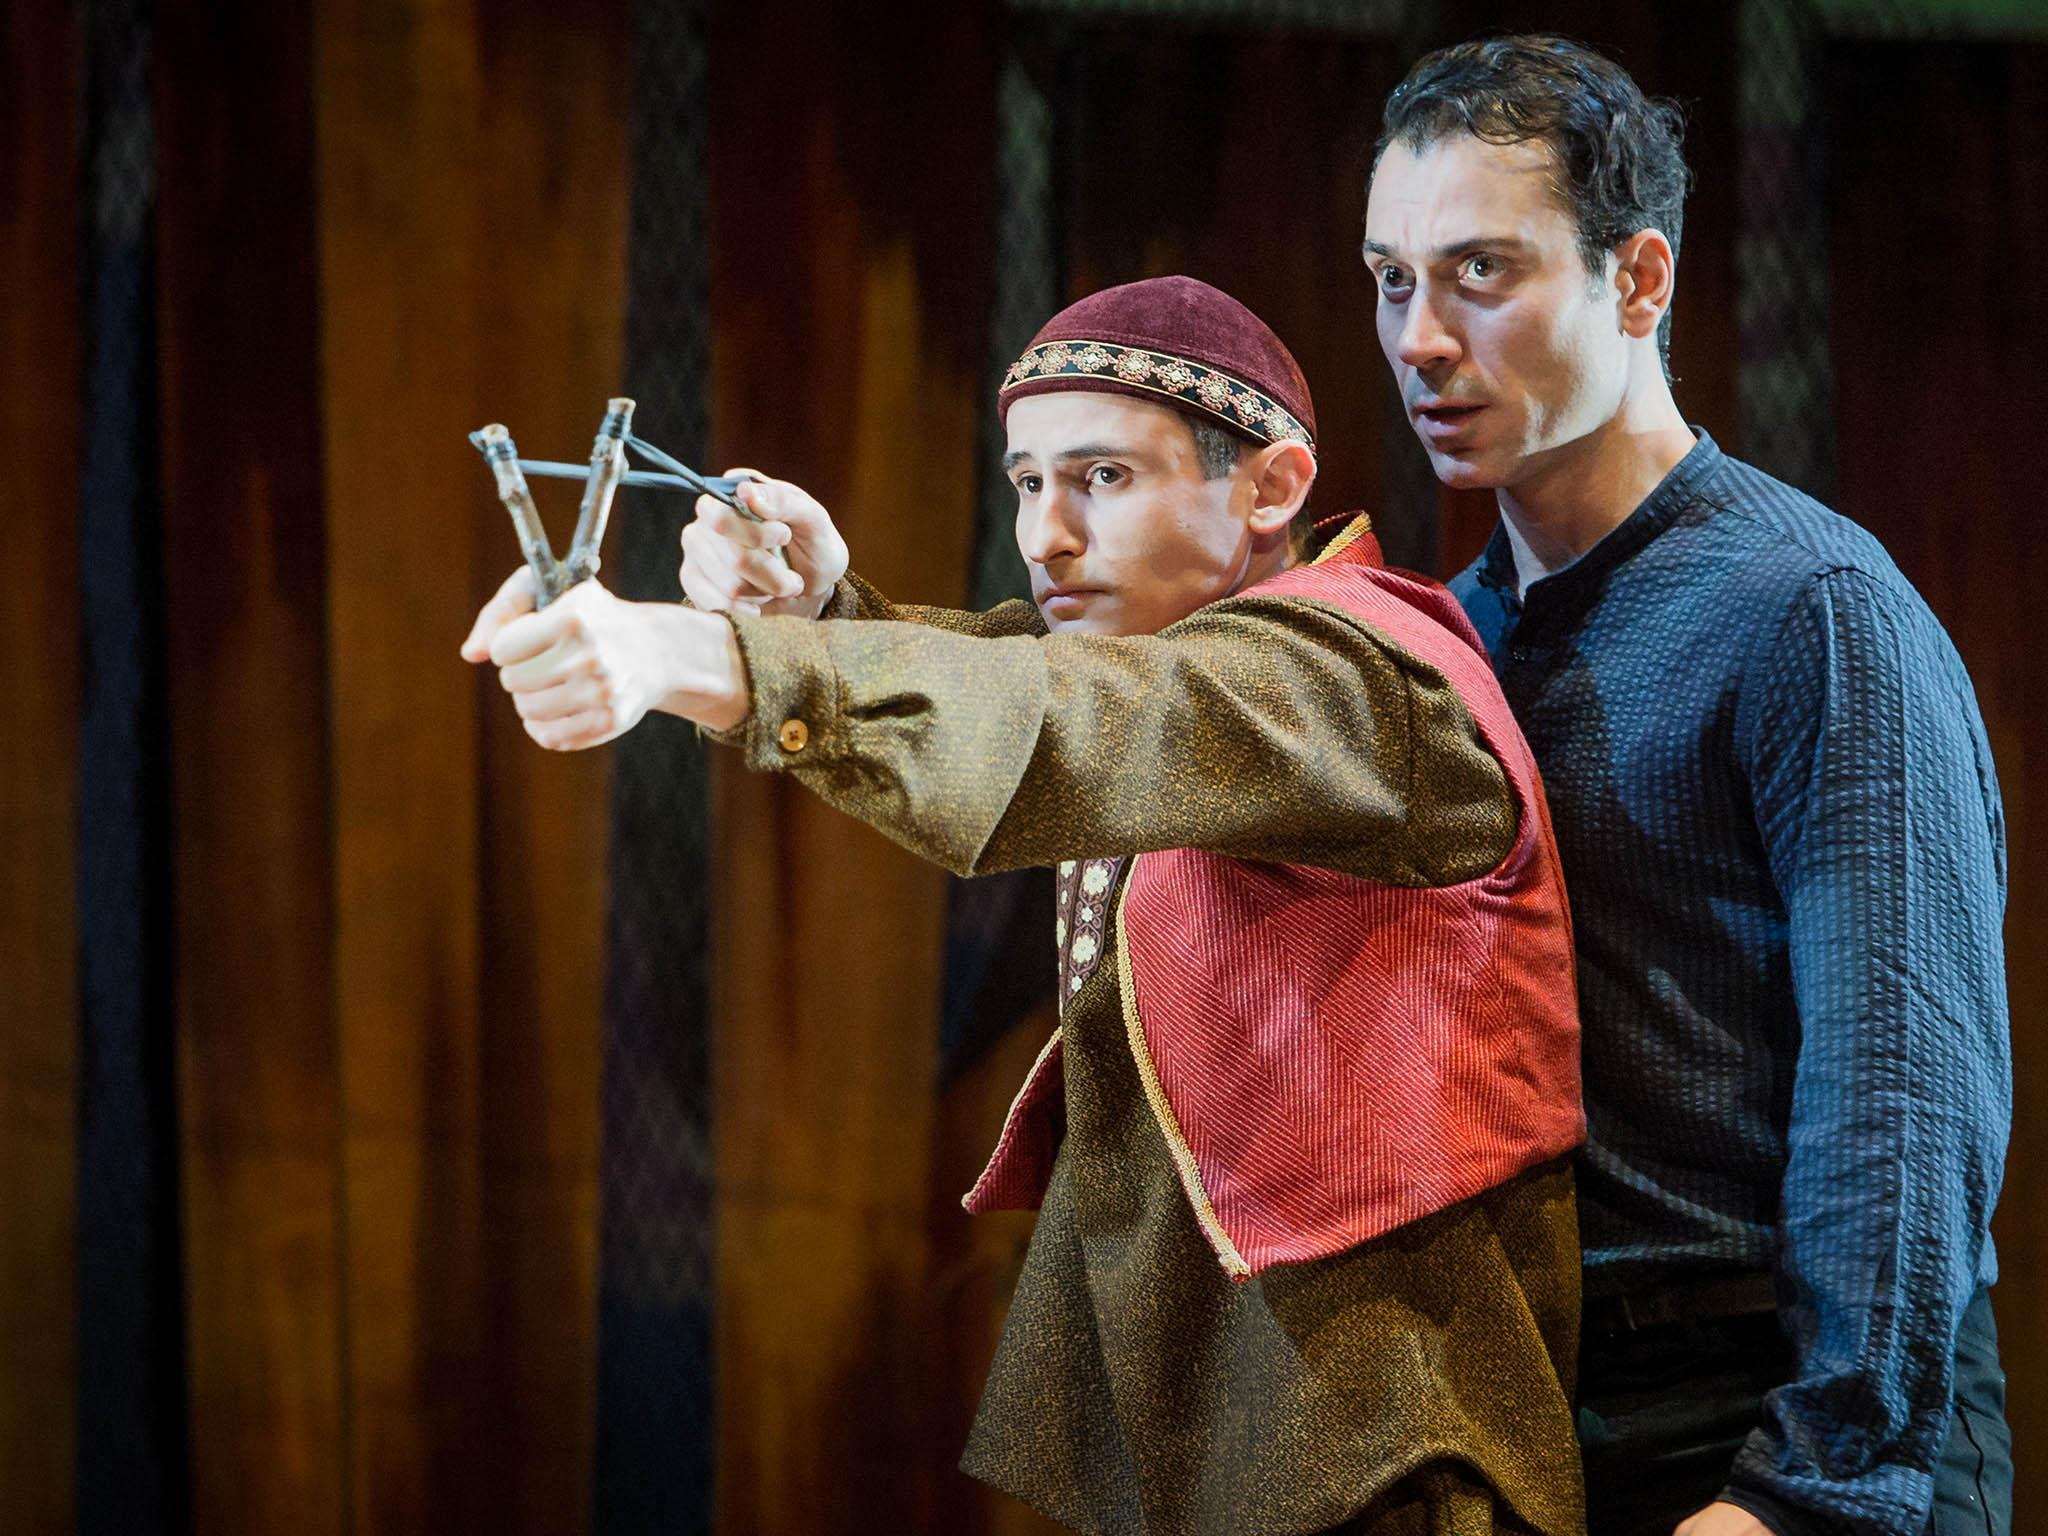 kite runner movie review the kite runner wyndham s theatre london review a performance the independent the kite runner wyndham